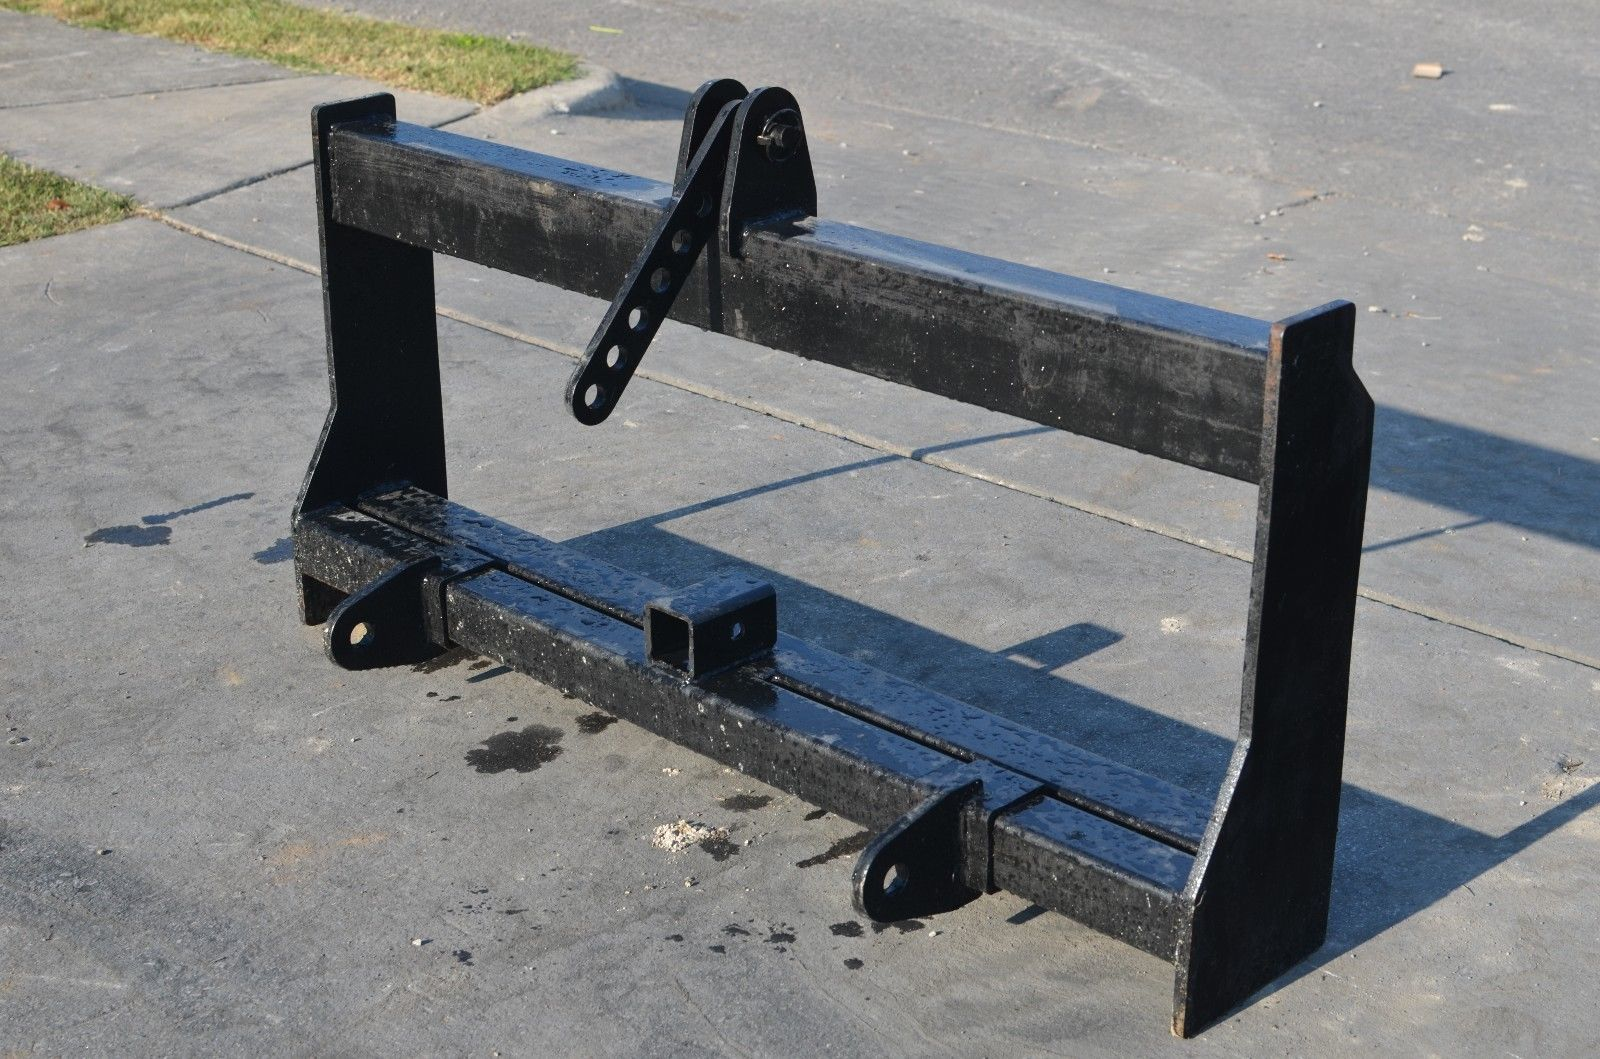 Skid Steer To 3 Point Hitch Adapter Conversion Skid